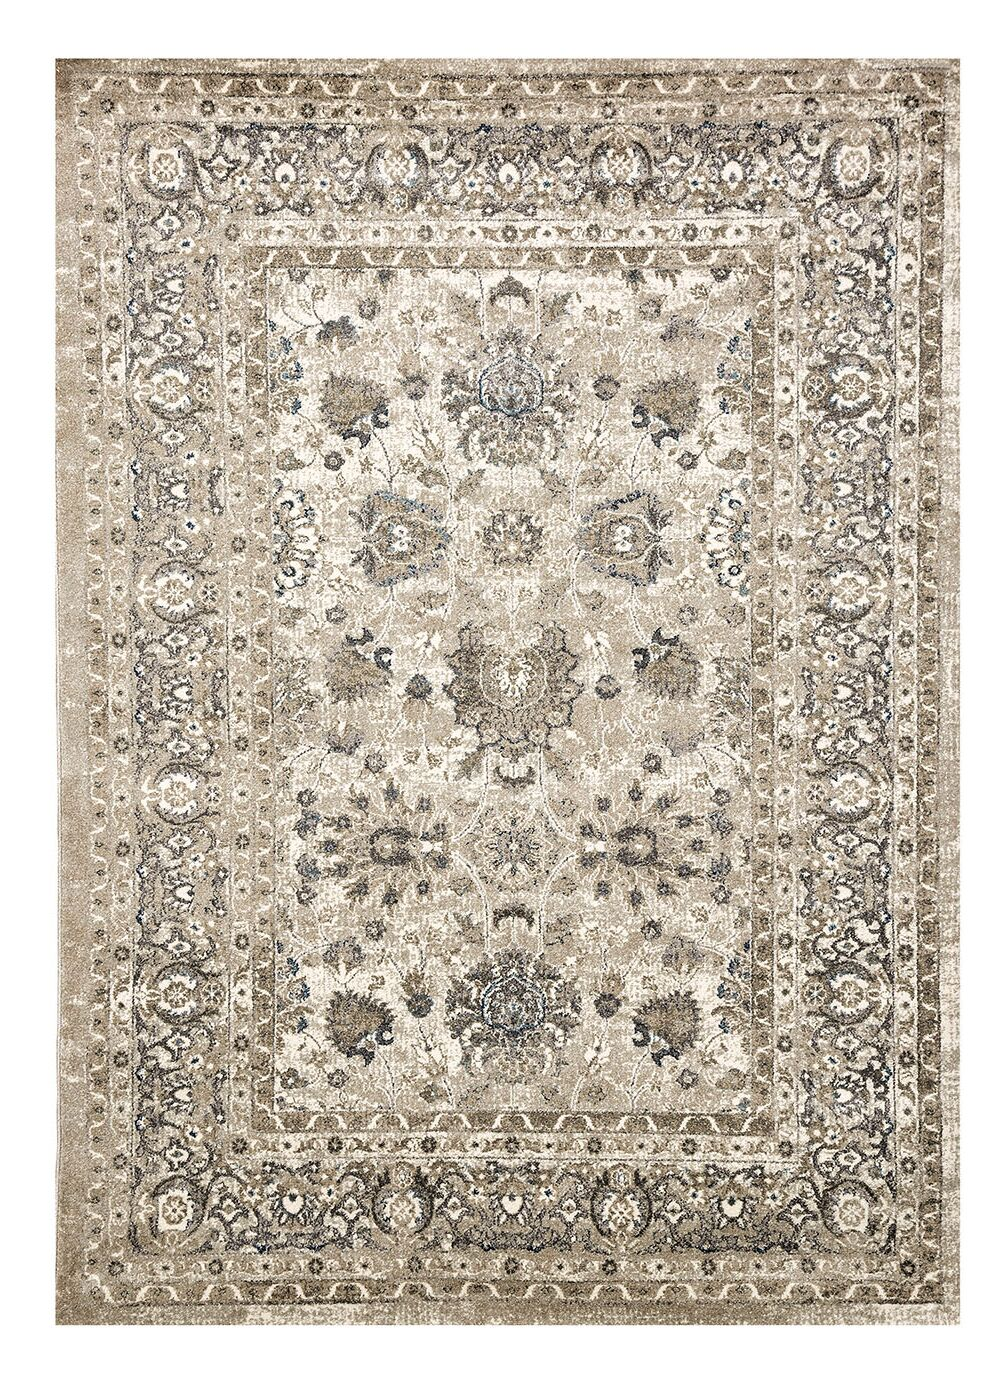 Redruth Ivory/Charcoal Indoor/Outdoor Area Rug Rug Size: Rectangle 5' x 8'